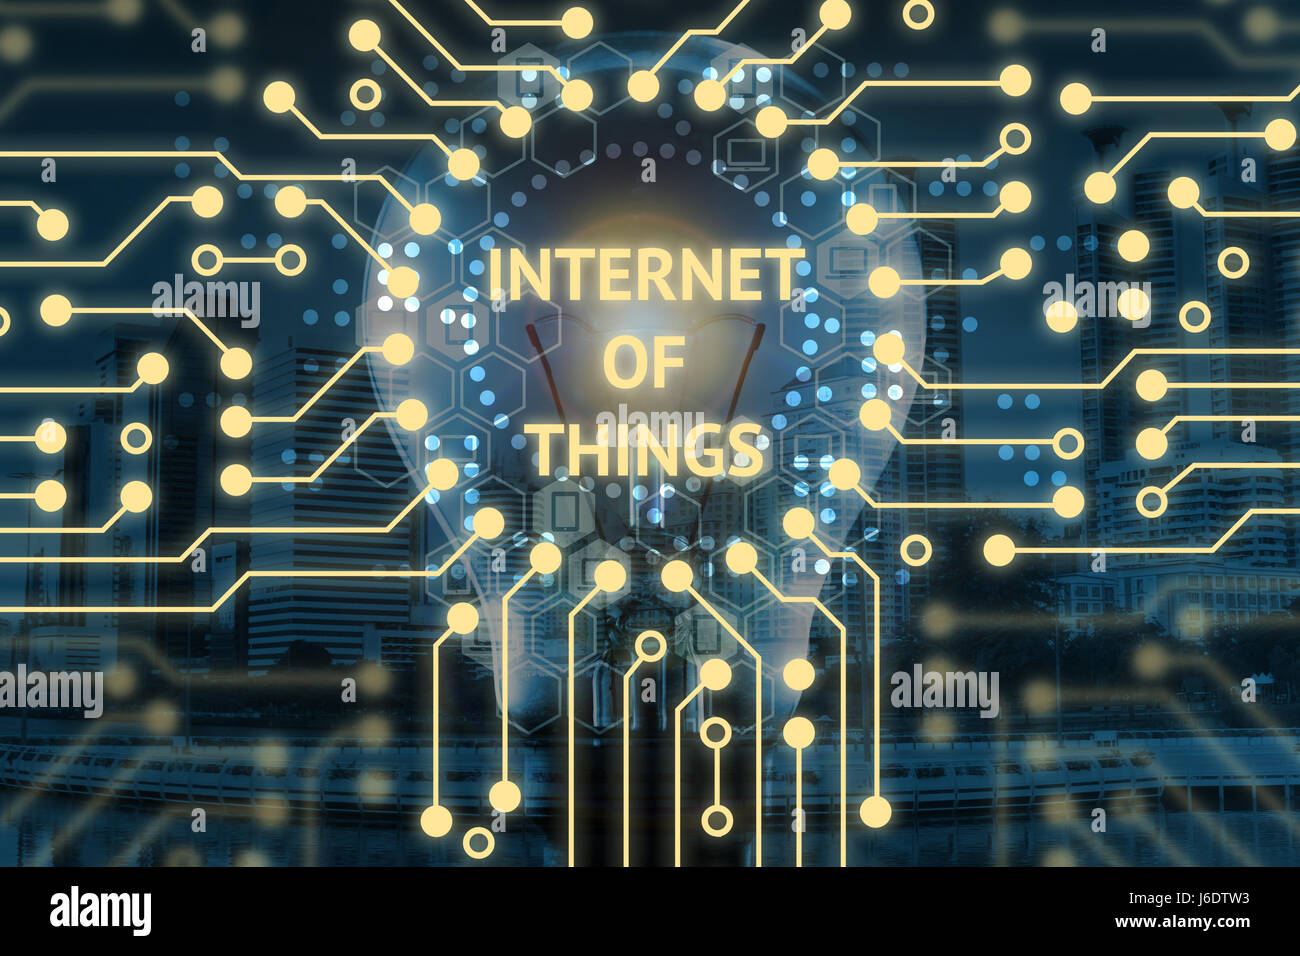 Internet Of Things Iot And Digital Lifestyle Concept Light Bulb Electric Circuit Circuits Graphic Background With Infographic Texts